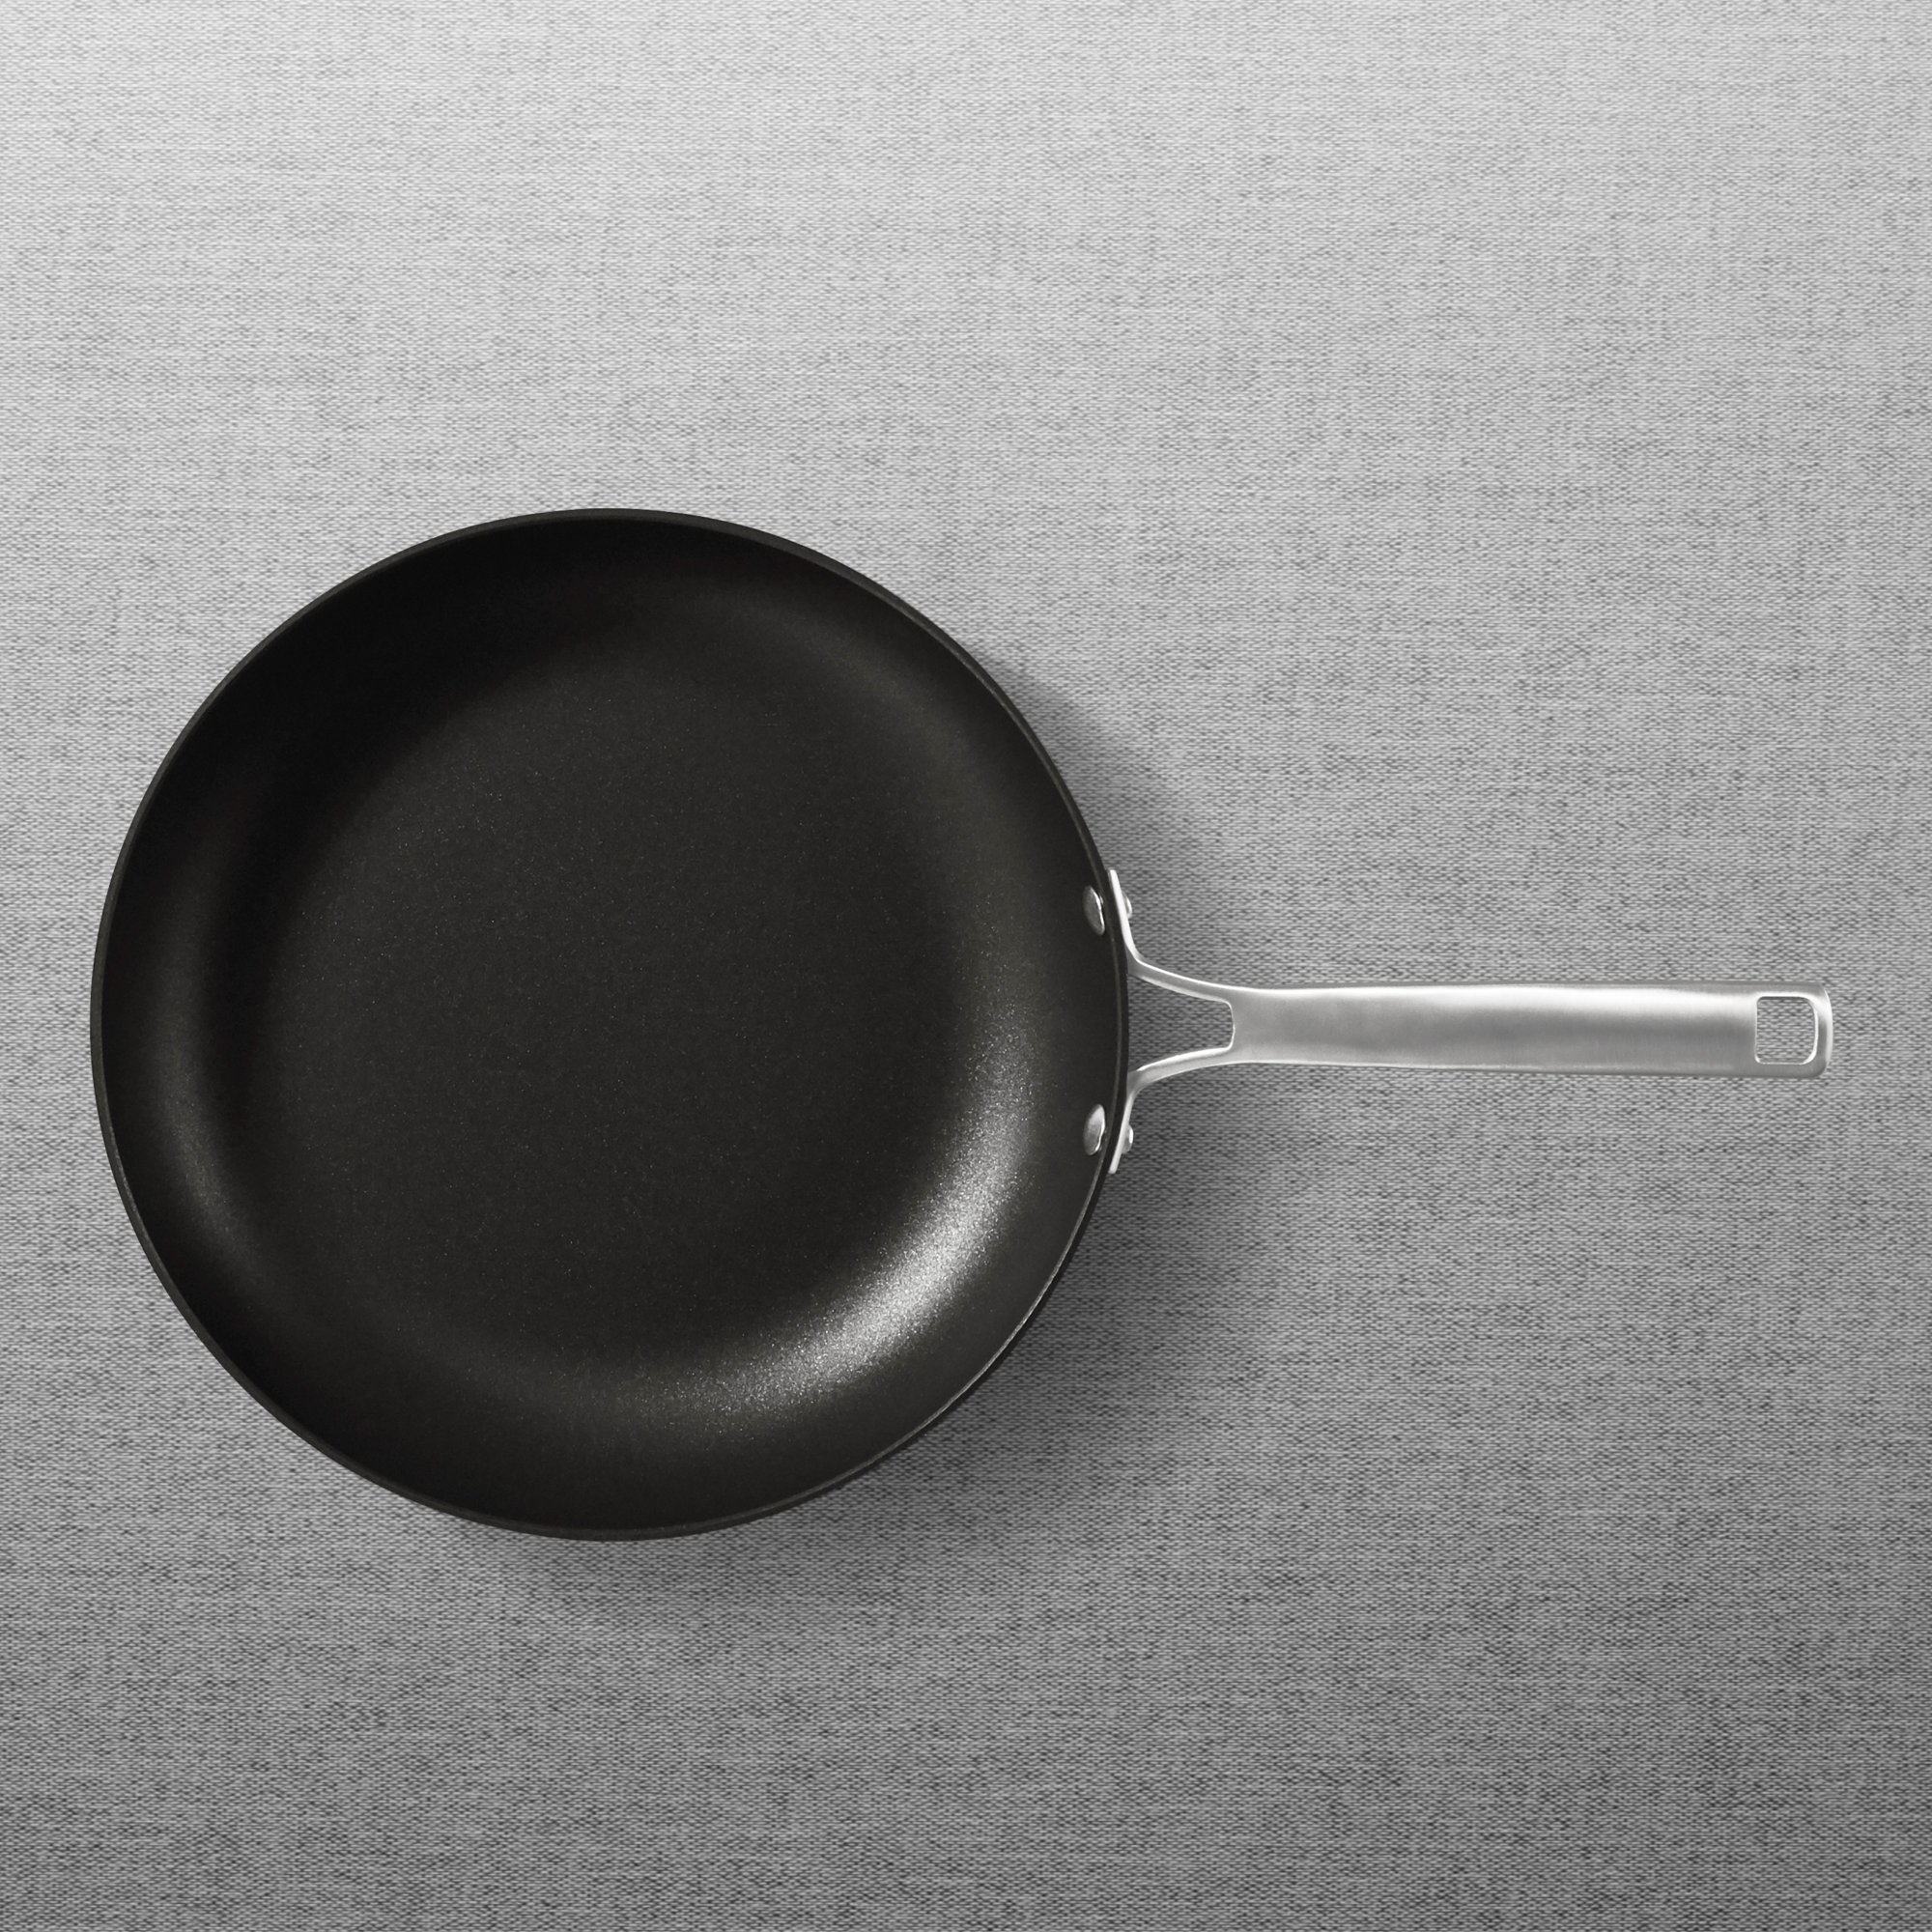 Calphalon Classic™ Nonstick 12-in. Fry Pan